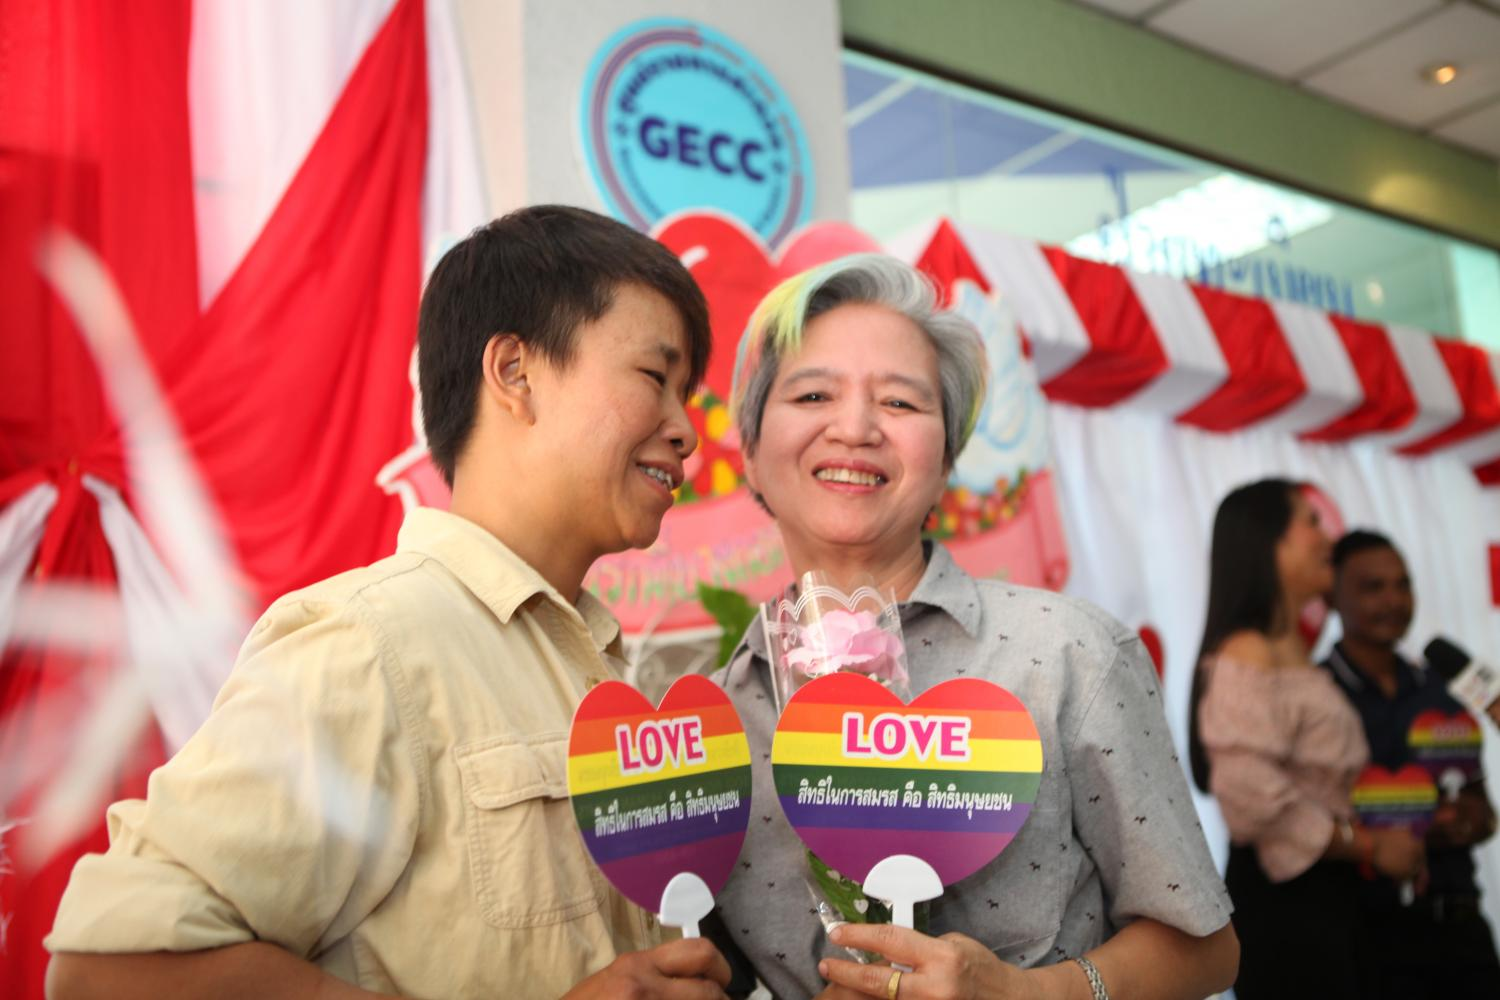 A couple marks Valentine's Day on Friday by registering their same-sex marriage at Bangkok Yai district office. However, their LGBT gender status will not be officially recognised by state authorities. (Photo by Arnun Chonmahatrakool)